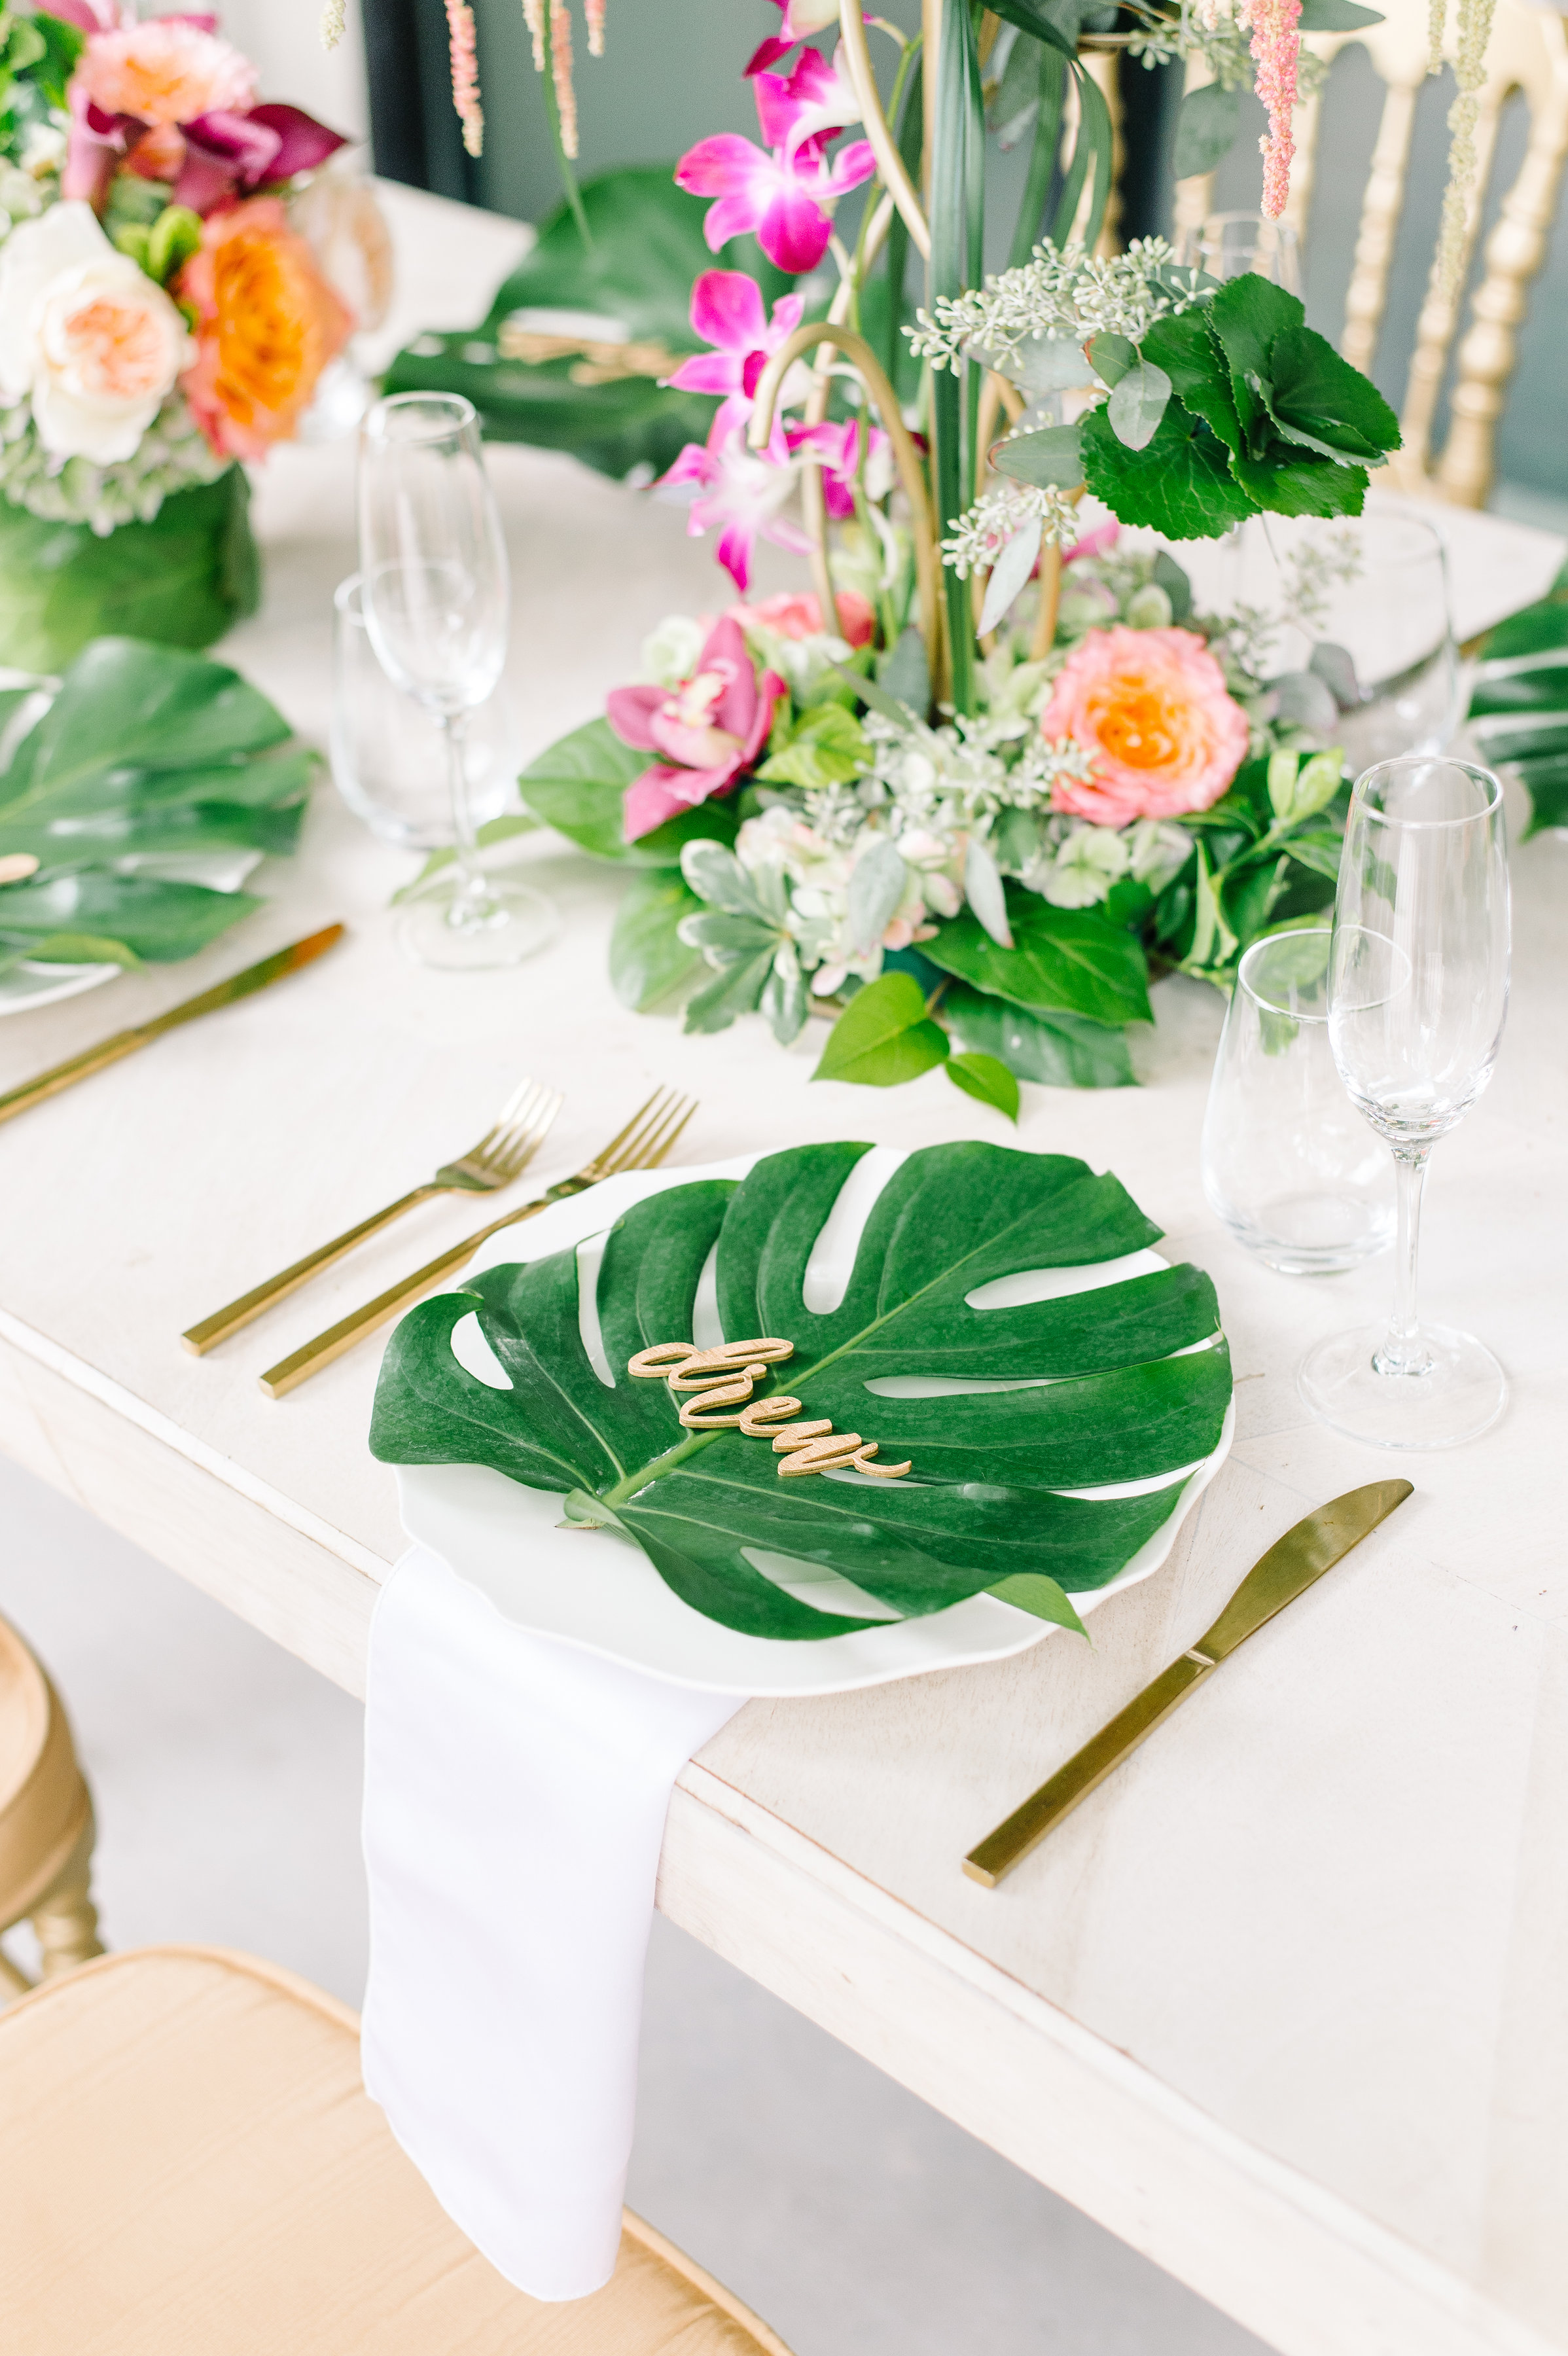 tropical wedding ideas that will transform your big day into